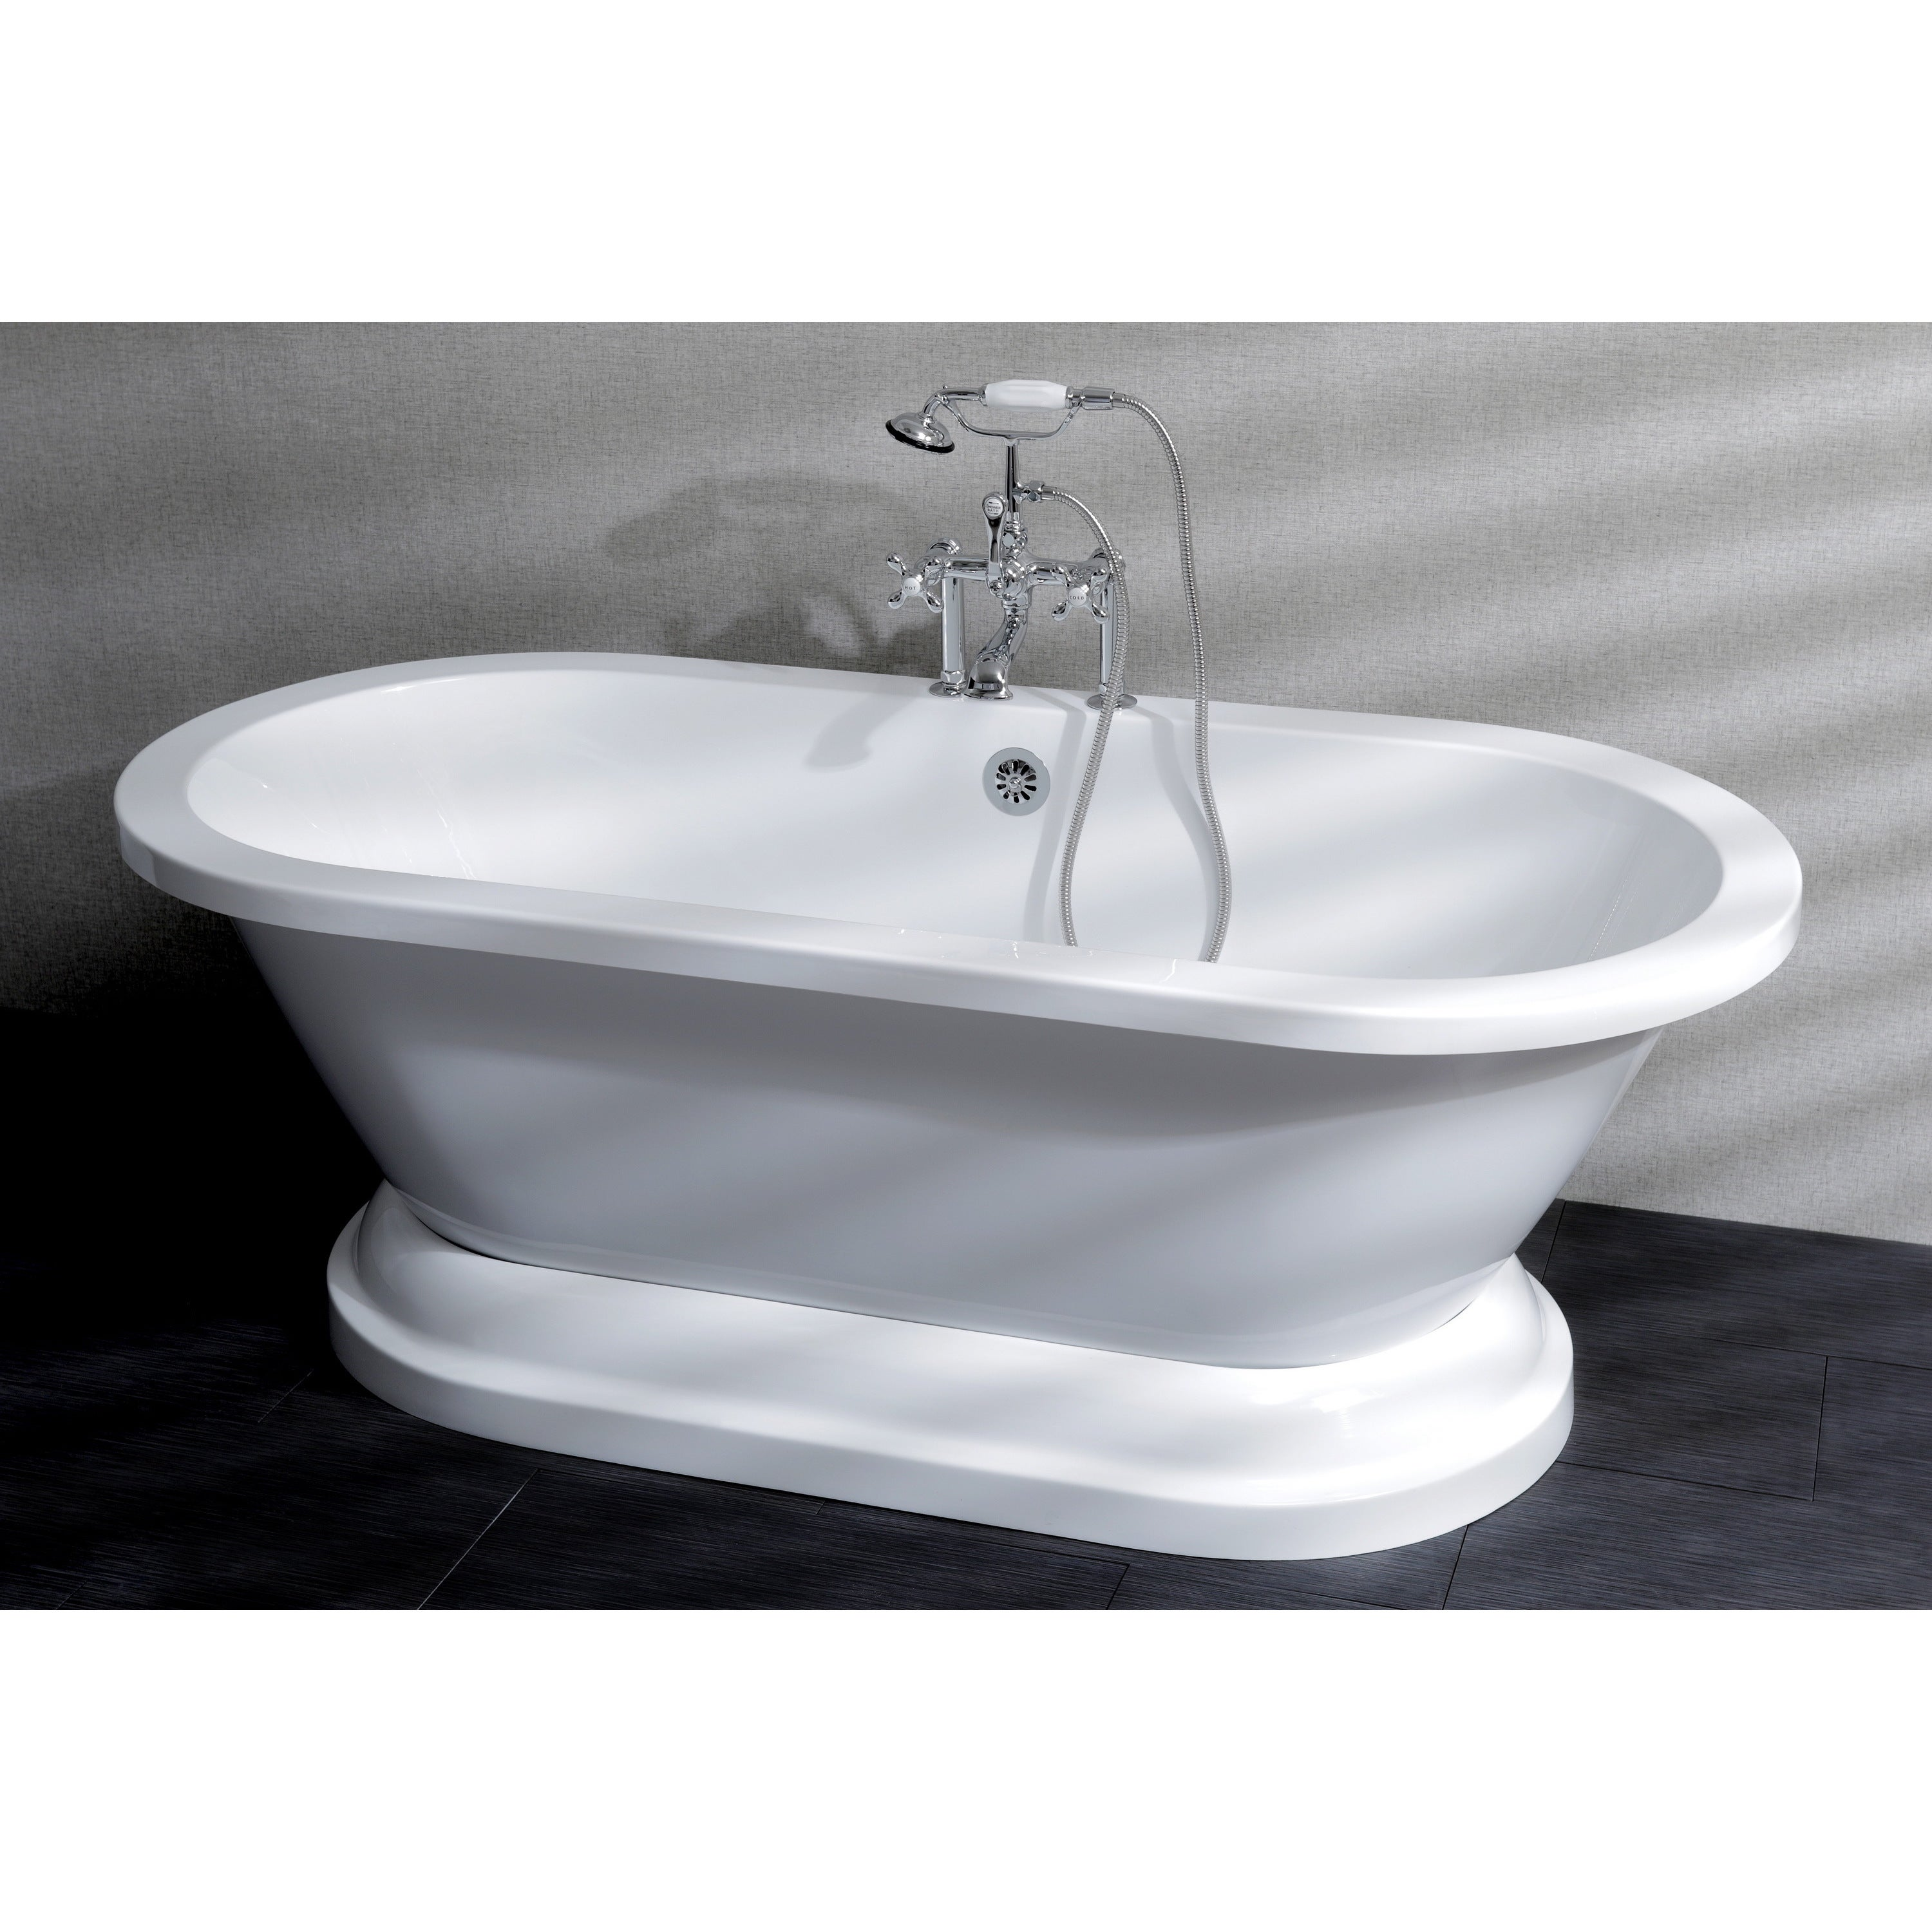 Shop Contemporary Double Ended Acrylic 67-inch Pedestal Bathtub with ...